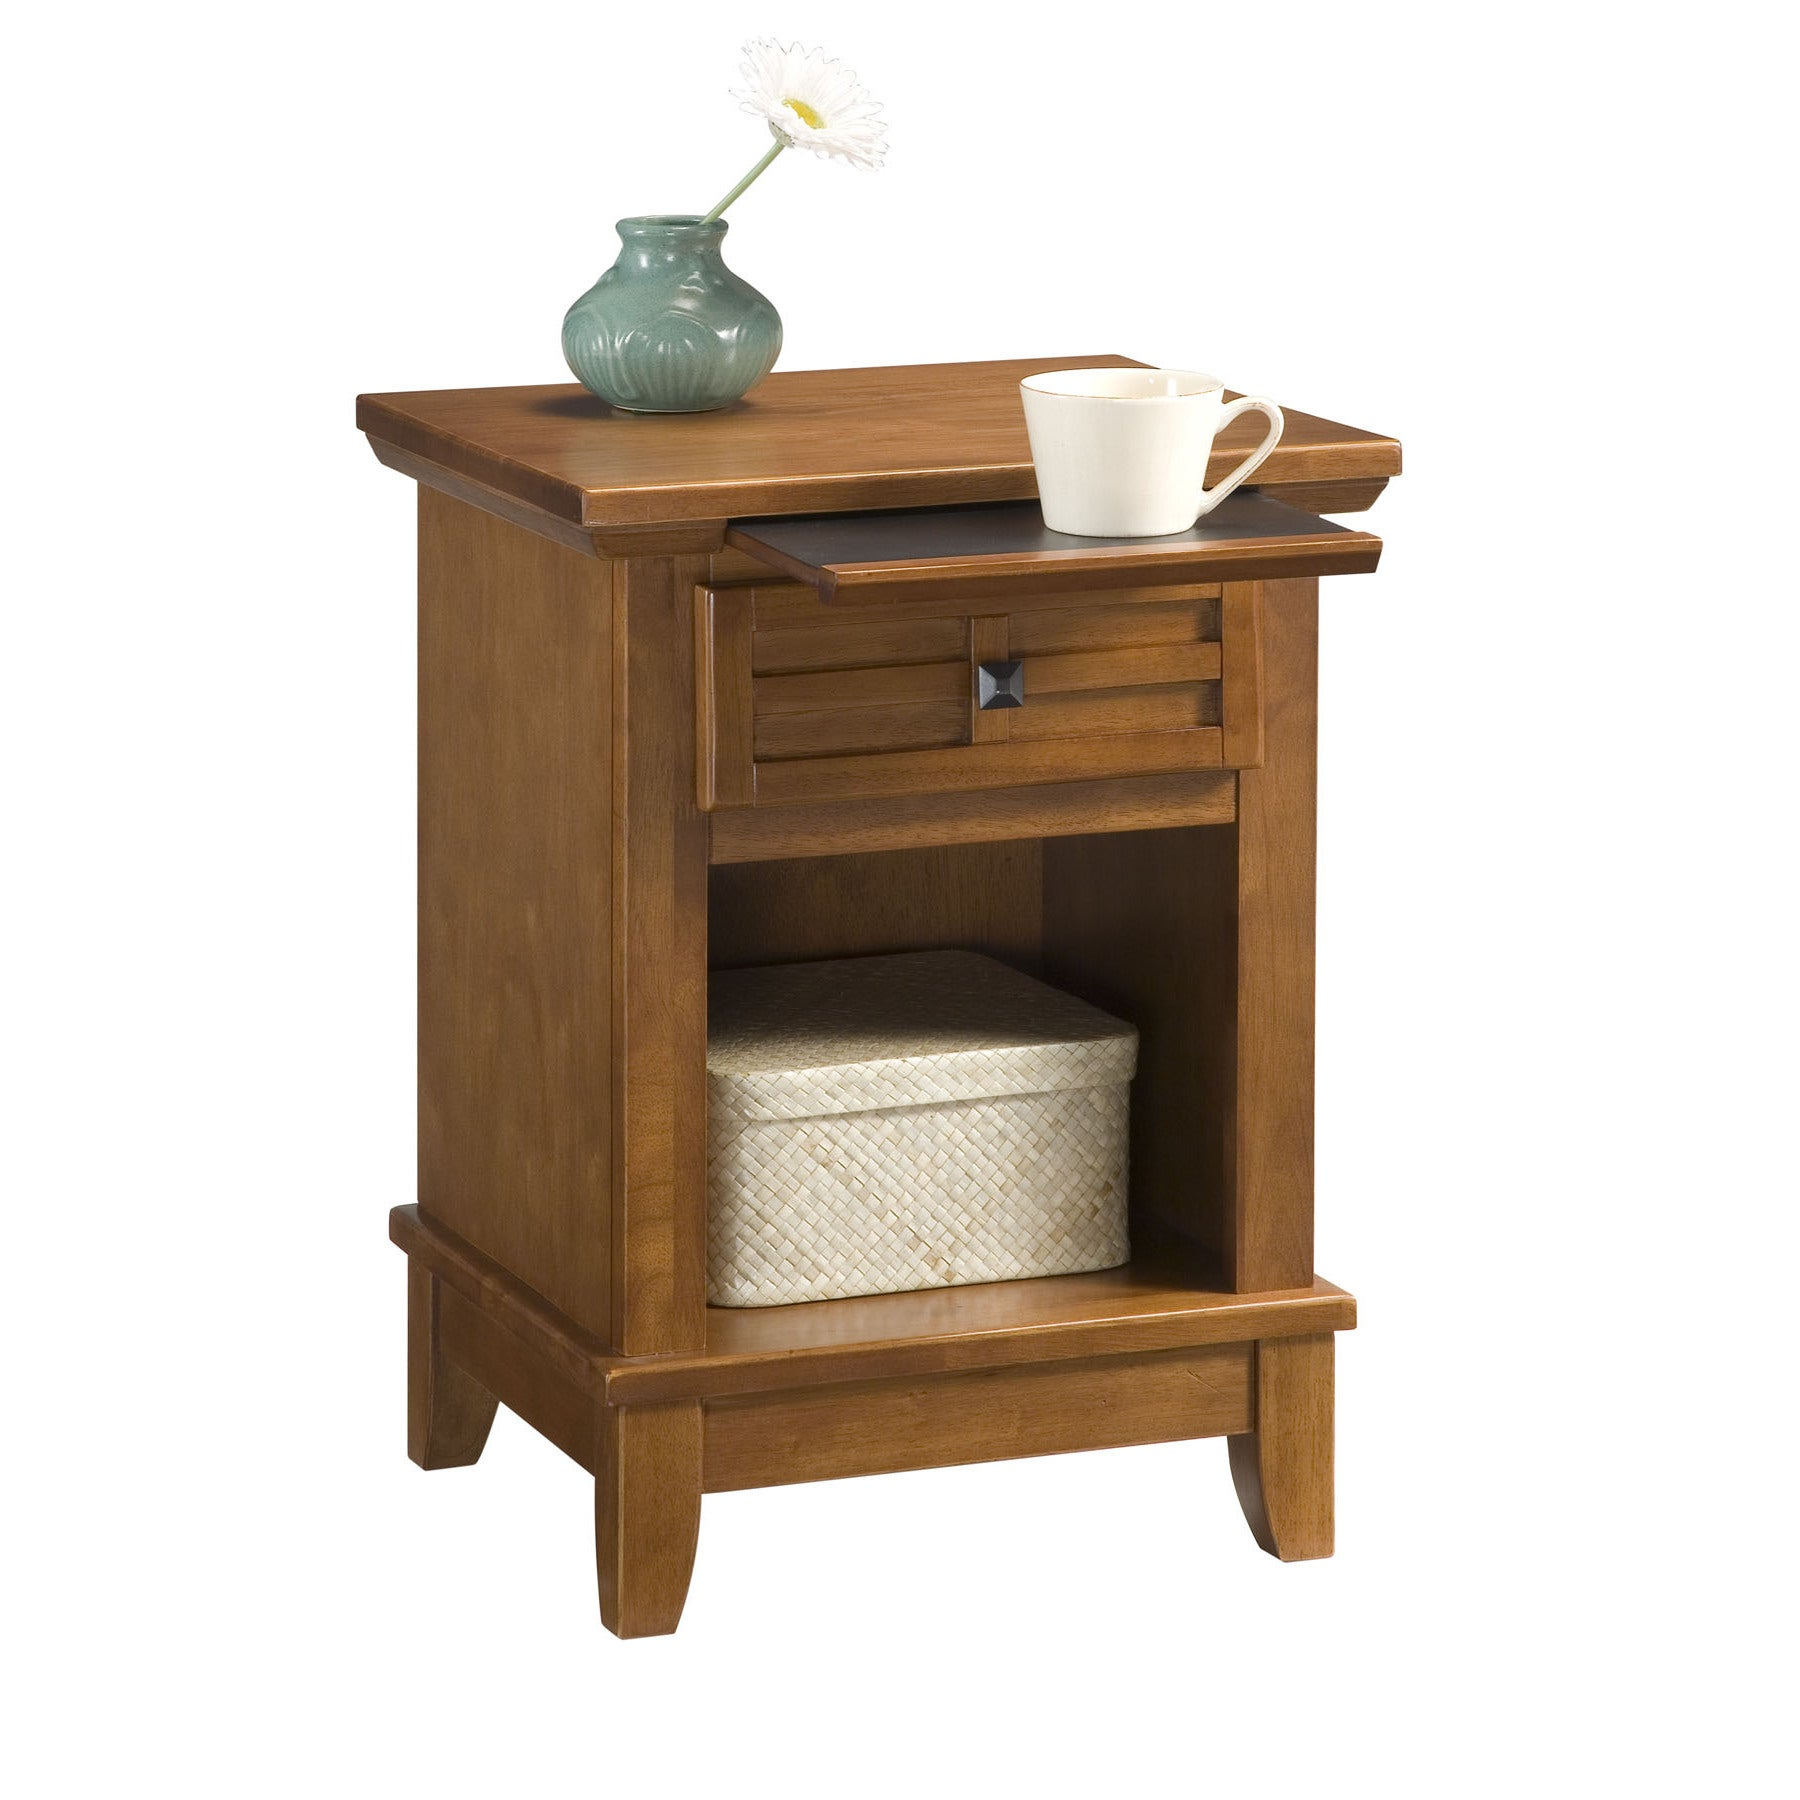 Arts And Crafts Cottage Oak Night Stand By Home Styles Overstock 11552199